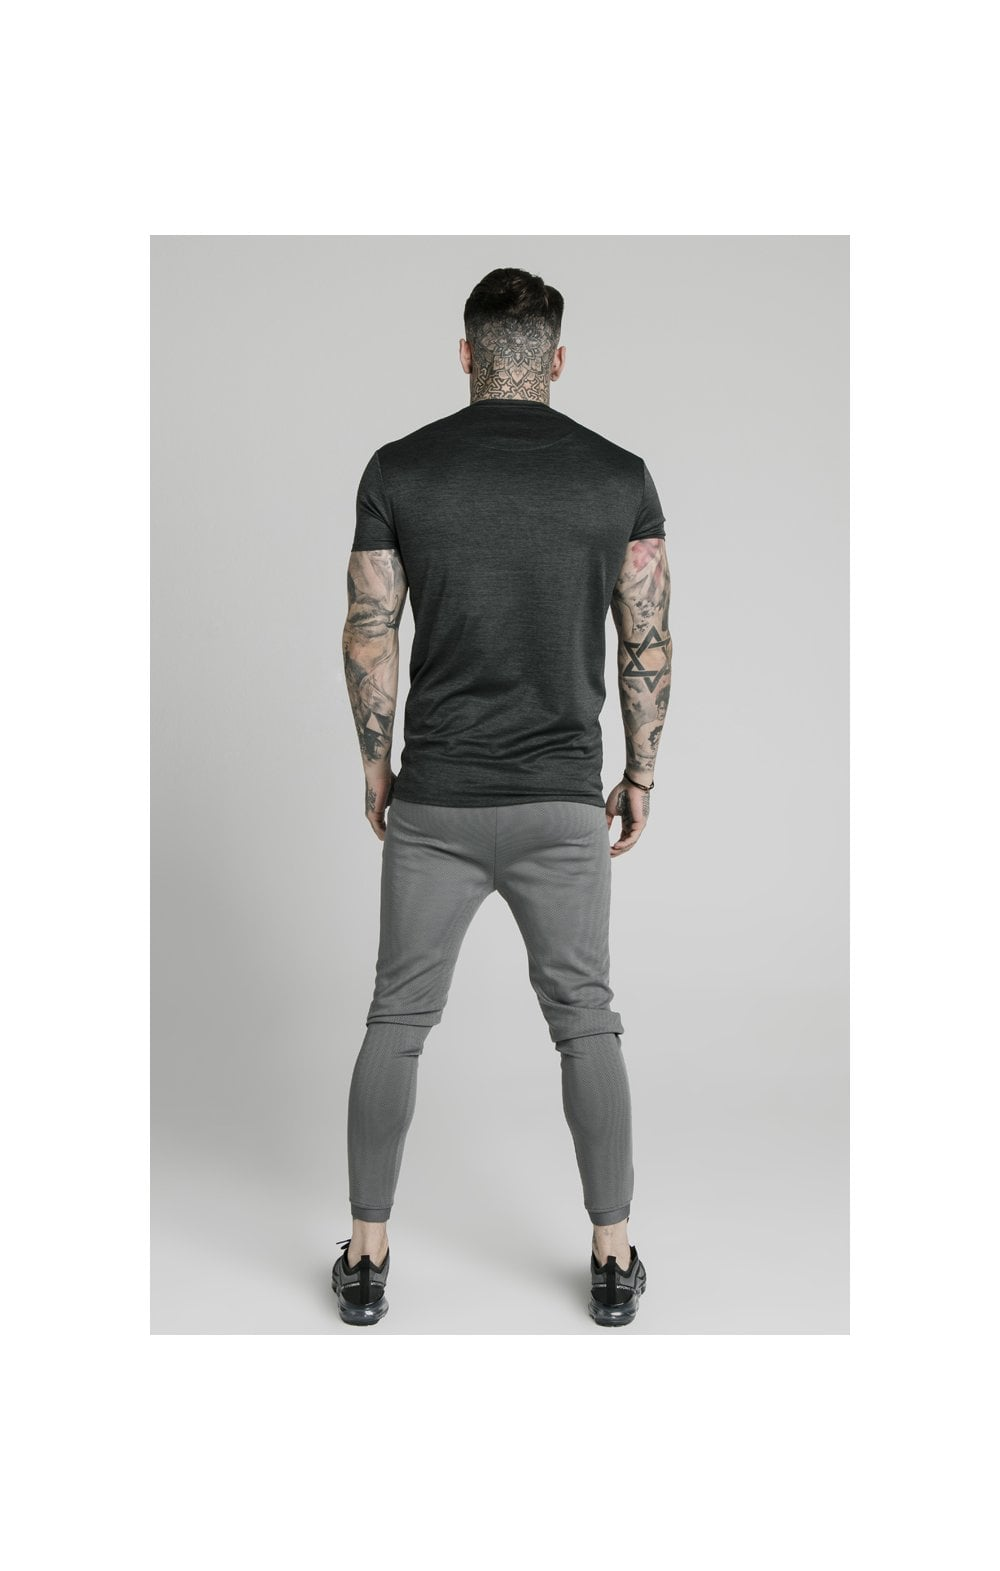 SikSilk Active Straight Hem Gym Tee - Charcoal Marl (5)